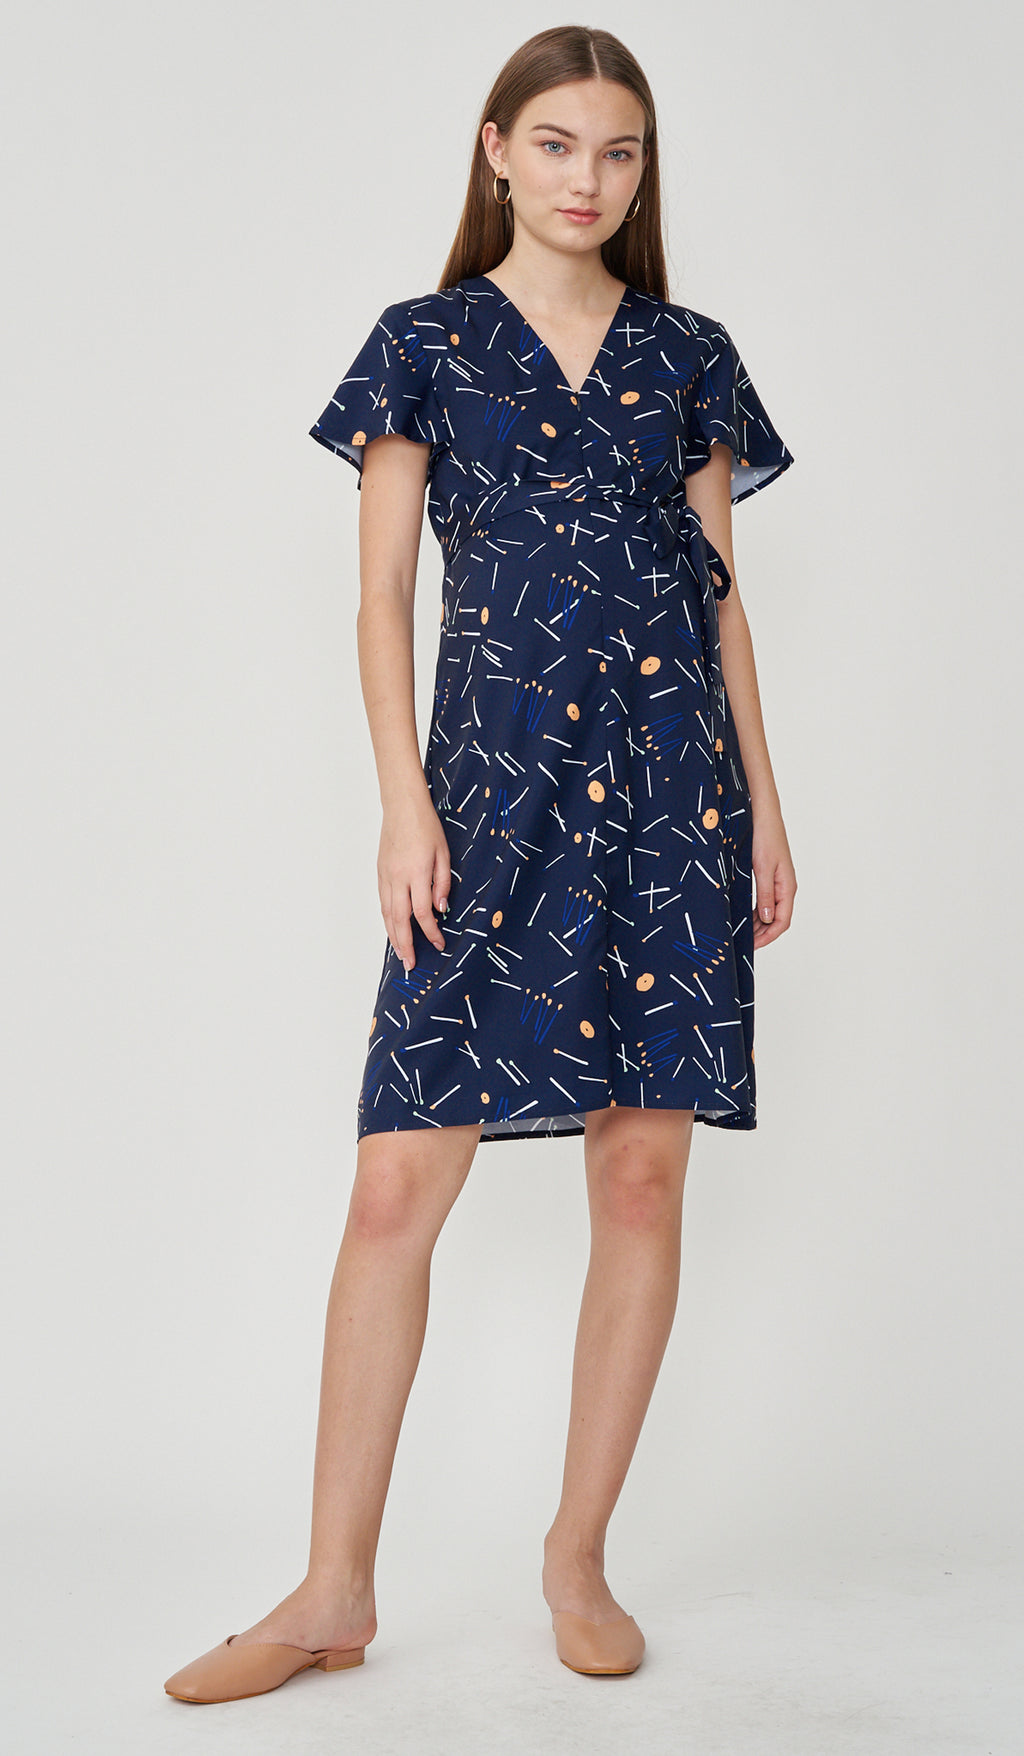 MATCHSTICKS FRONT ZIP NURSING DRESS